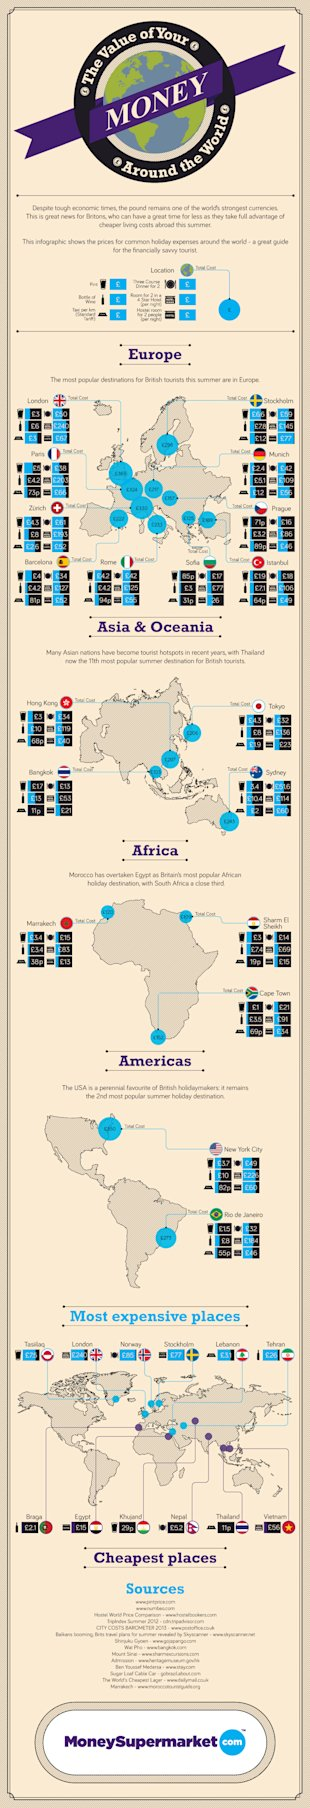 The Value Of Your Travel Money Around The World [Infographic] image The Value of Your Money Around the World